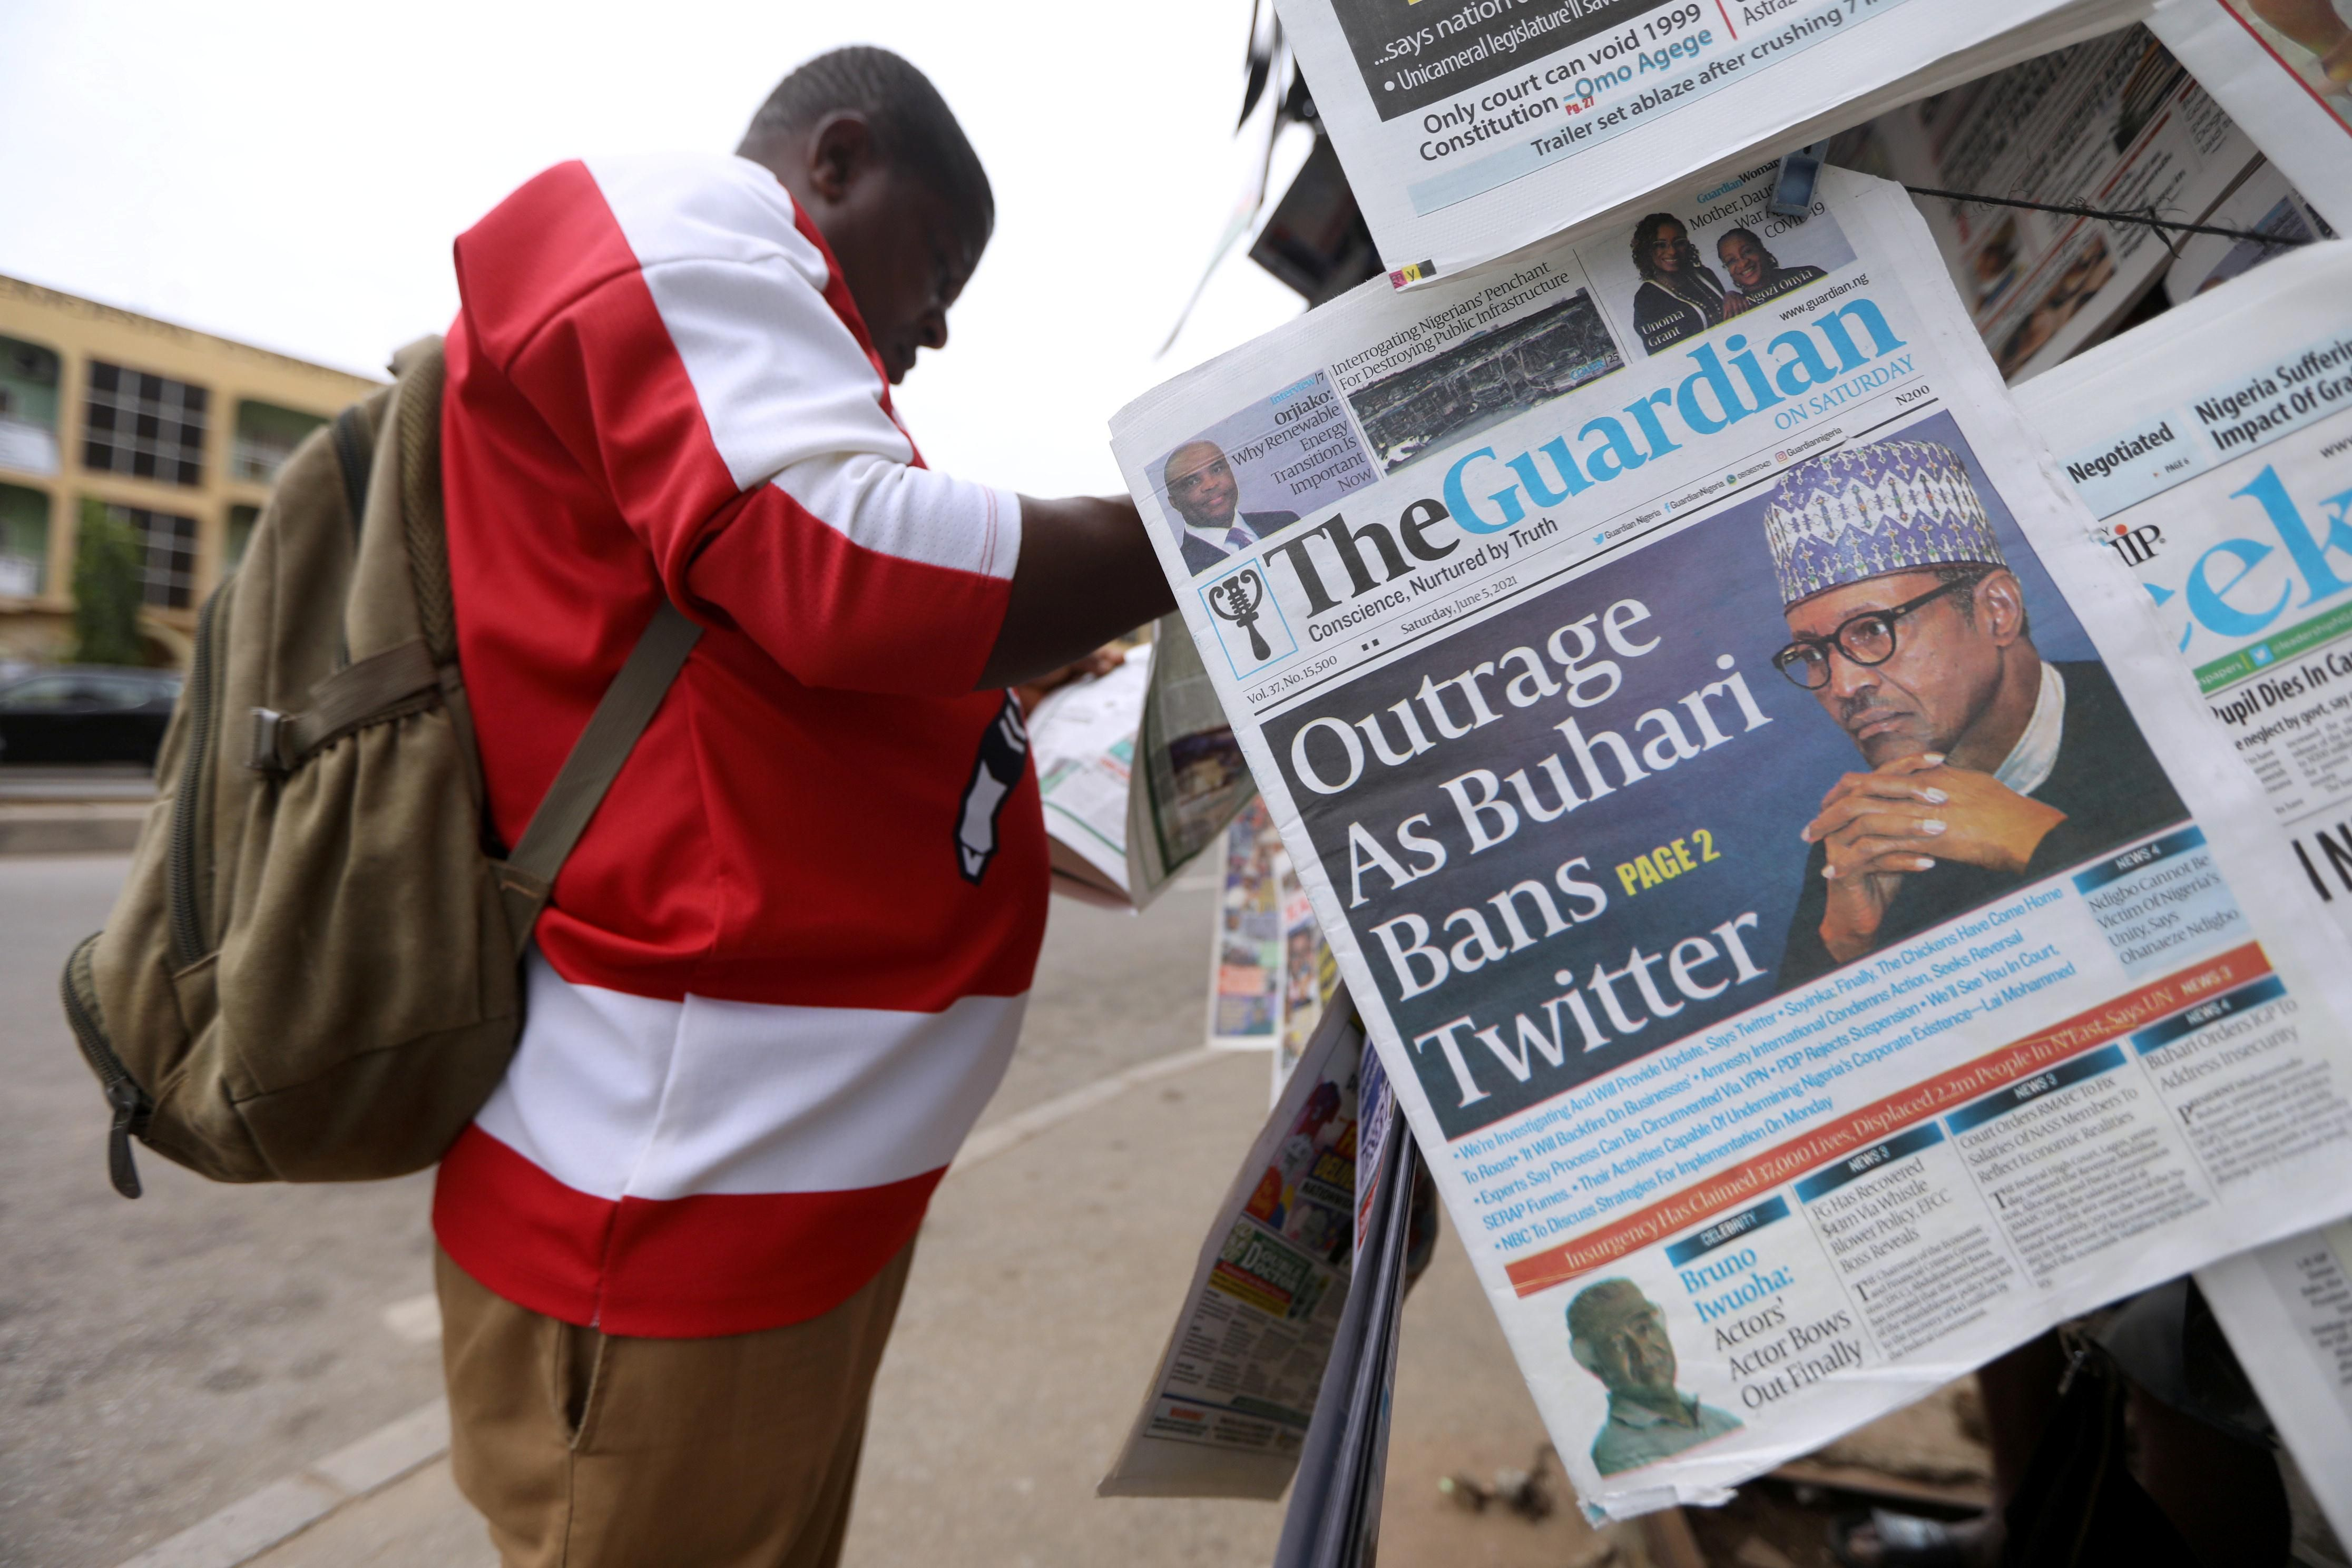 Nigeria bungled the chance to lead a global conversation on social media regulation